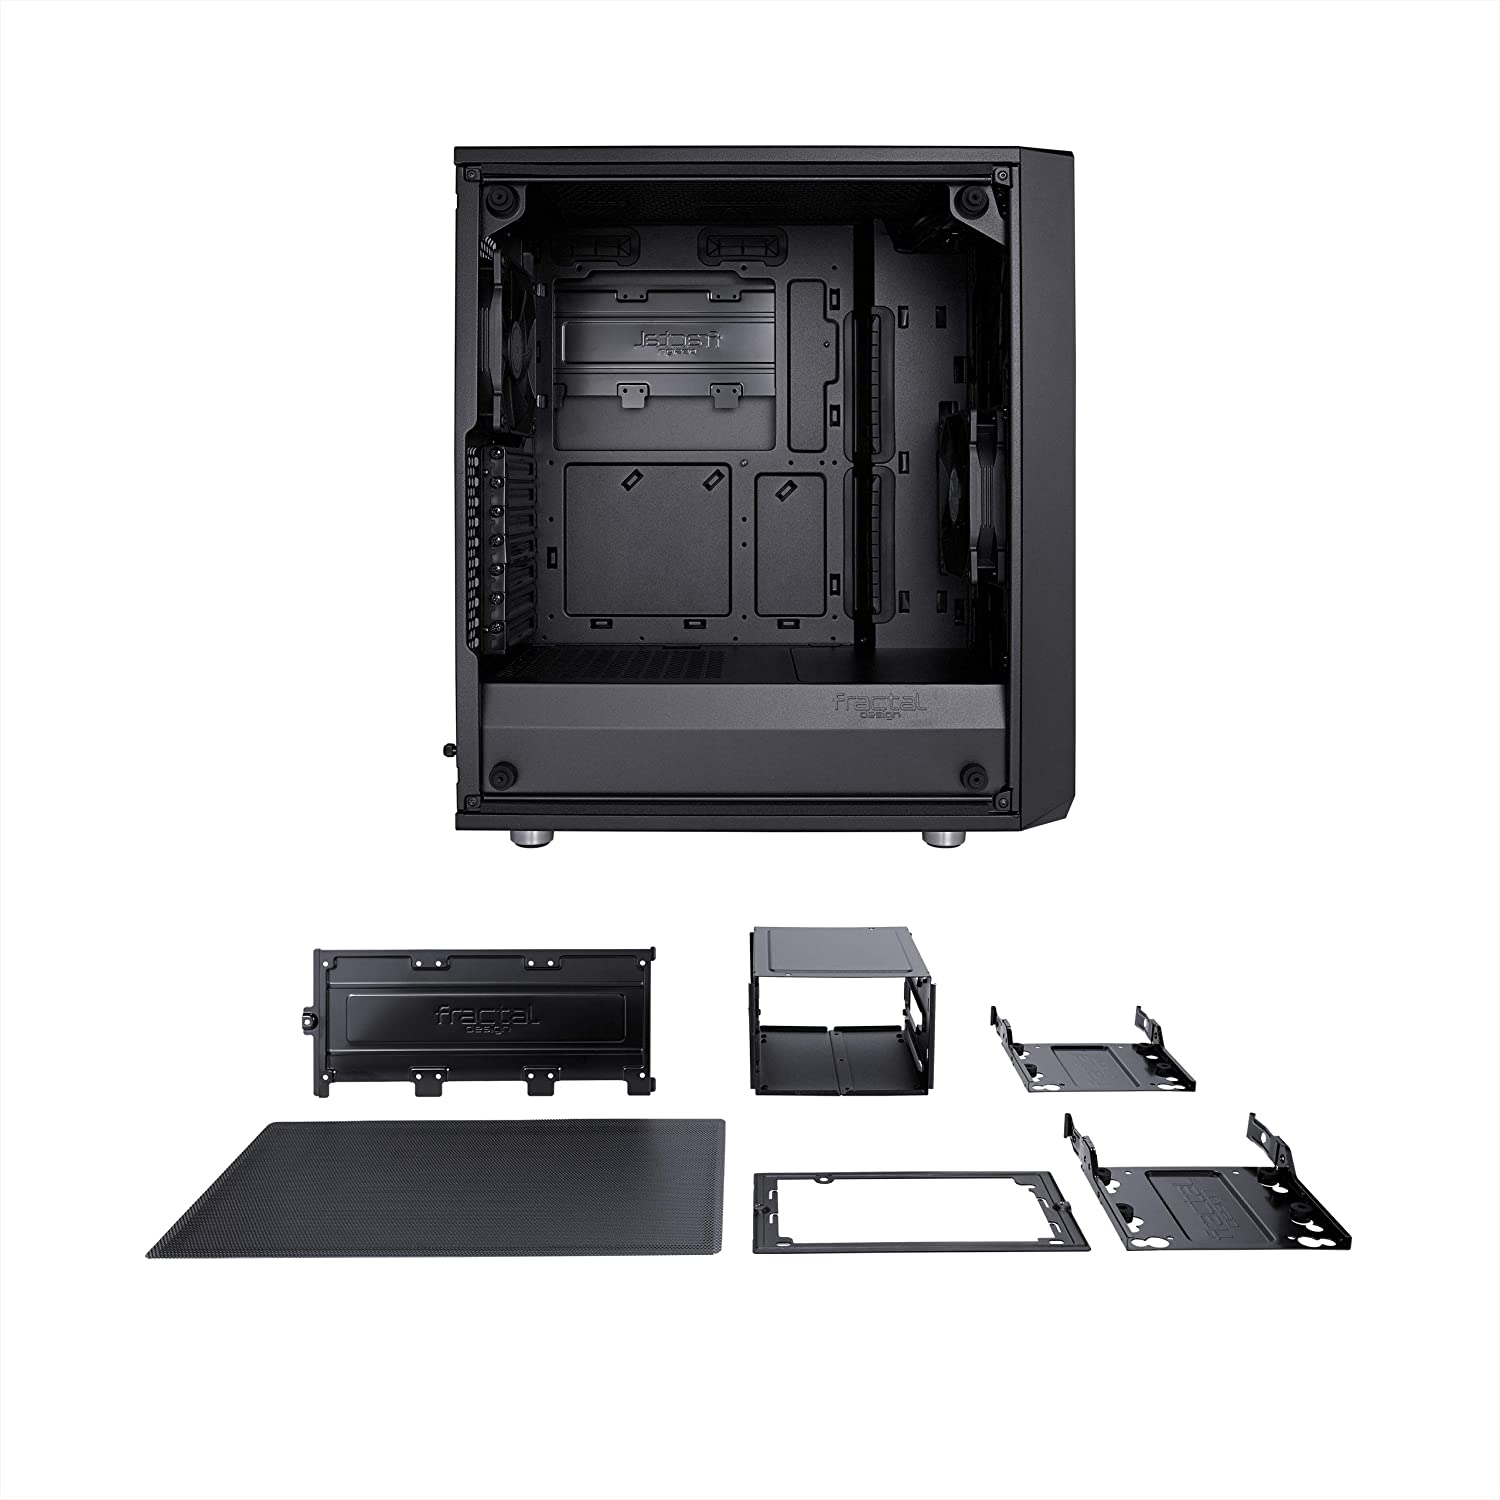 Water-Cooling Ready 2X Fans Included Tempered Glass PSU Shroud Compact Computer Case Modular Interior USB3.0 Blackout High Performance Airflow//Cooling Fractal Design Meshify C